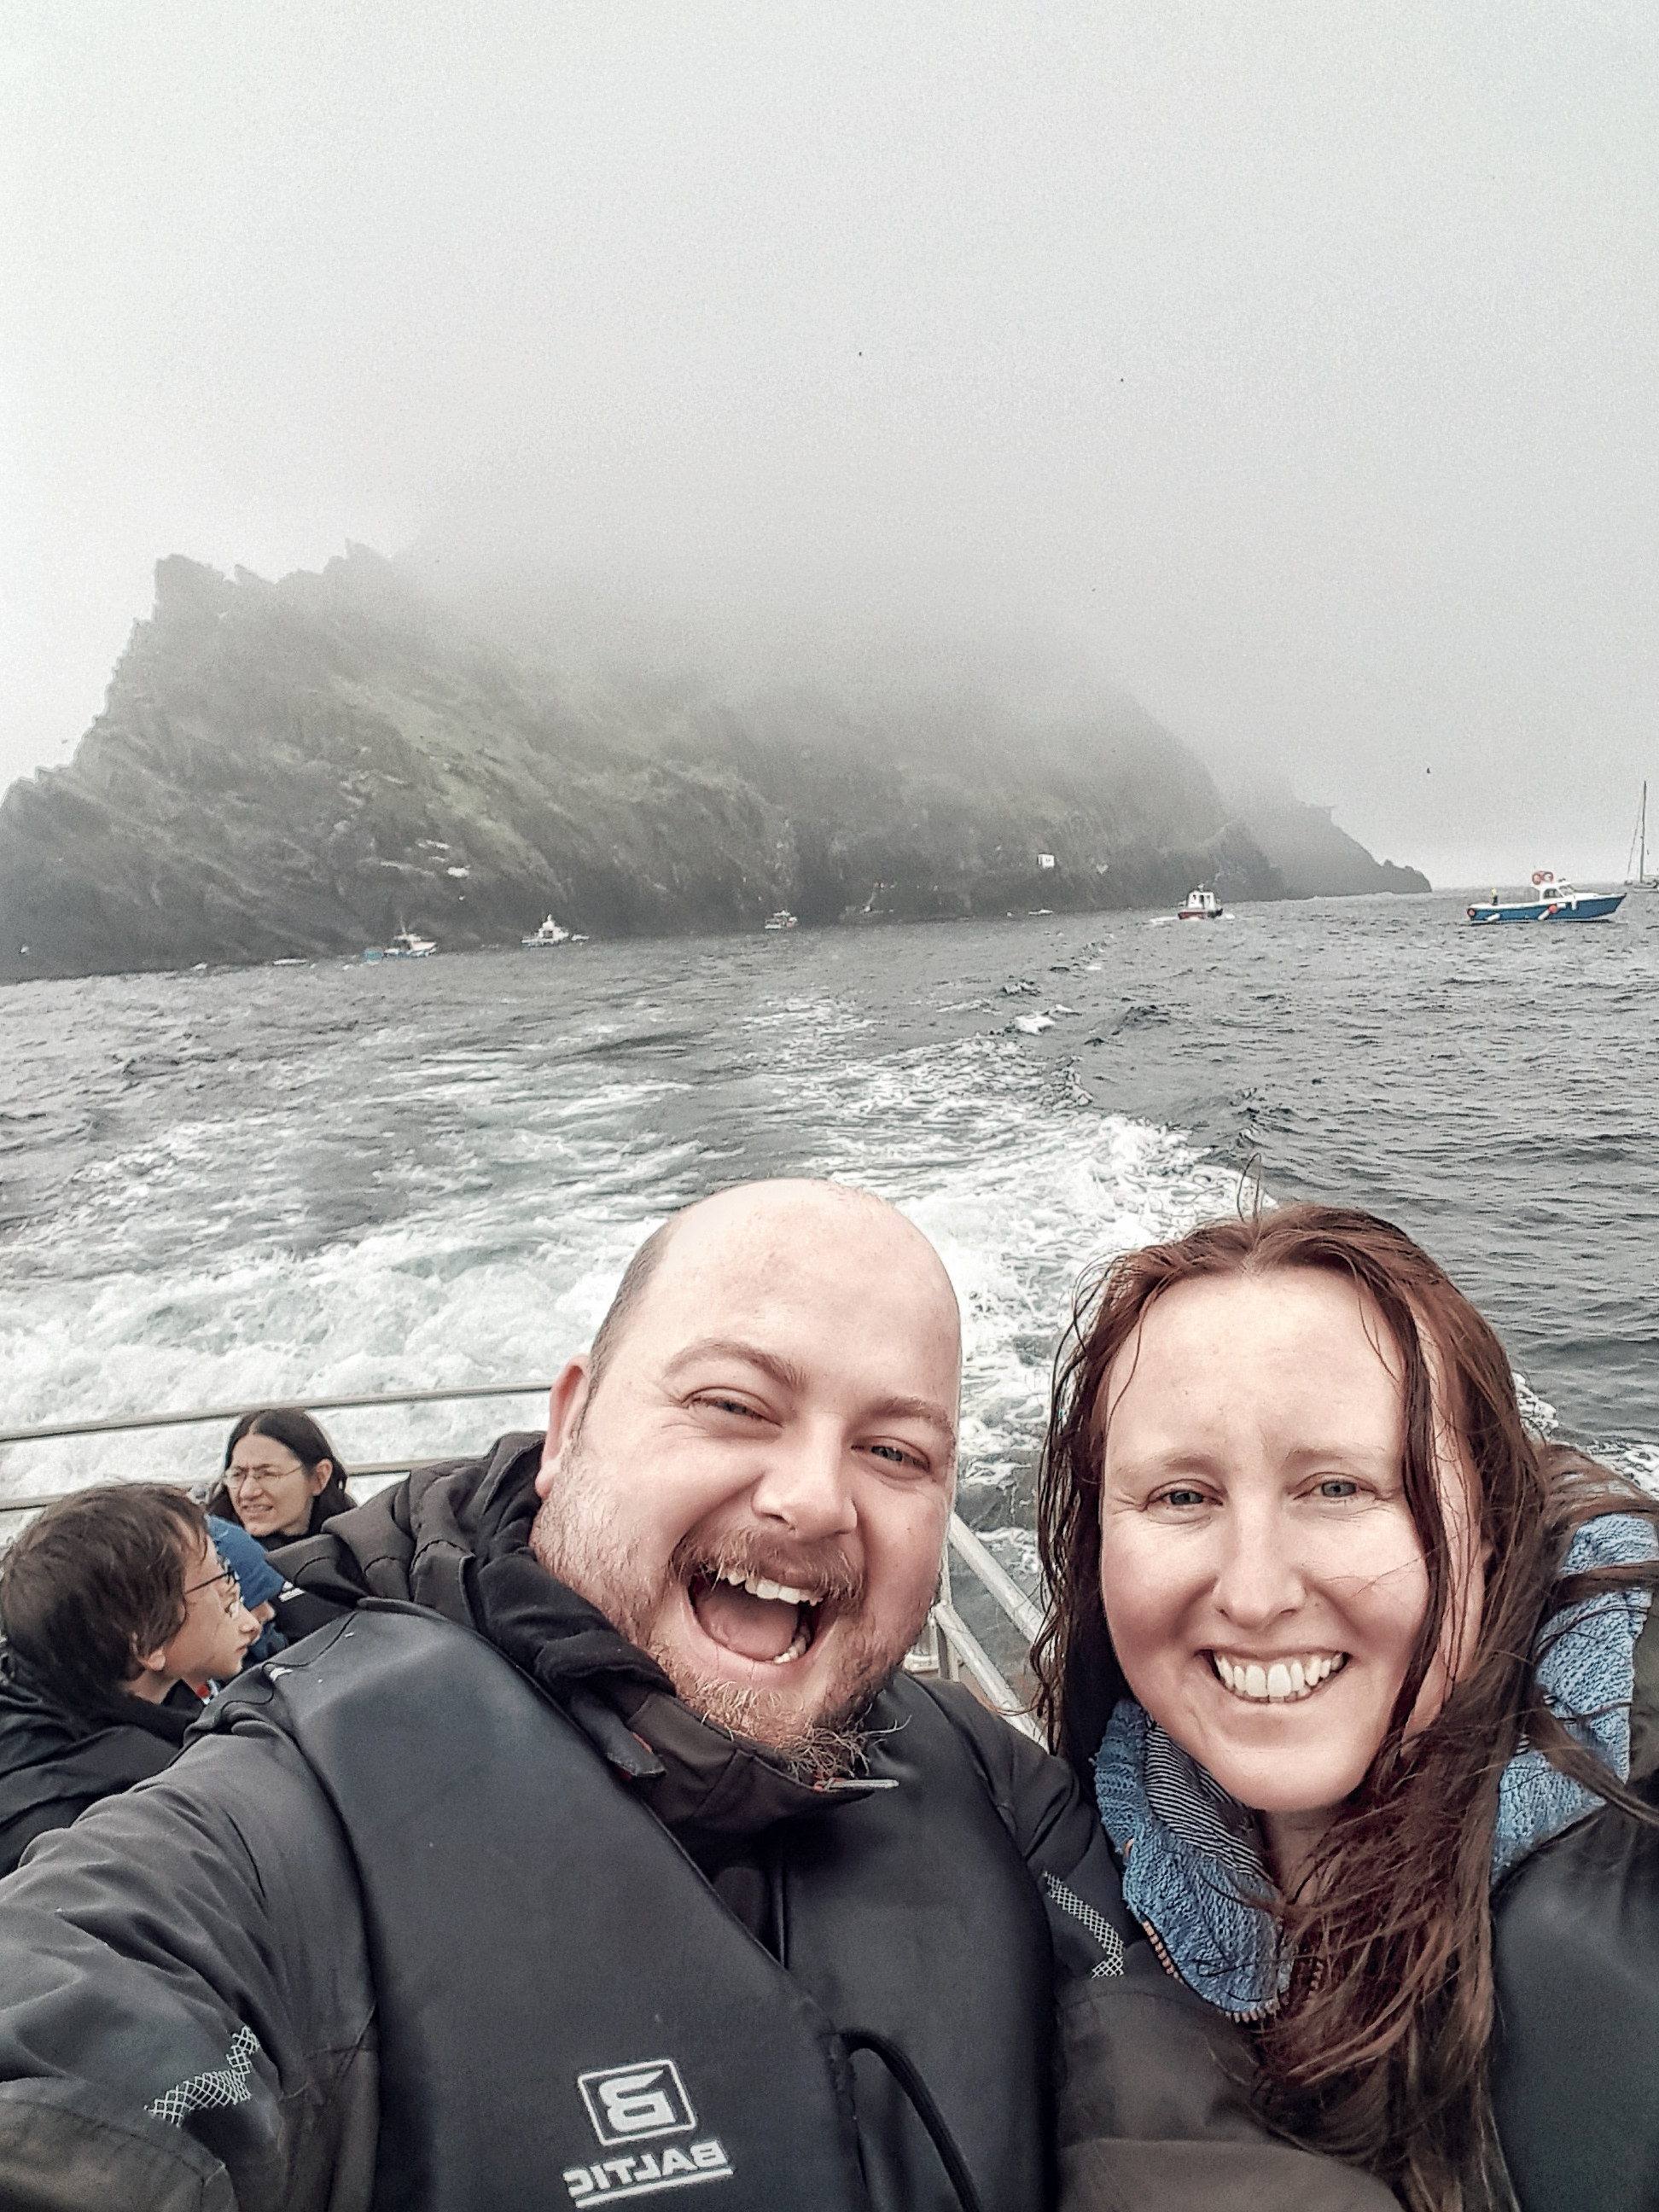 Soaking wet on the boat from Skellig Michael